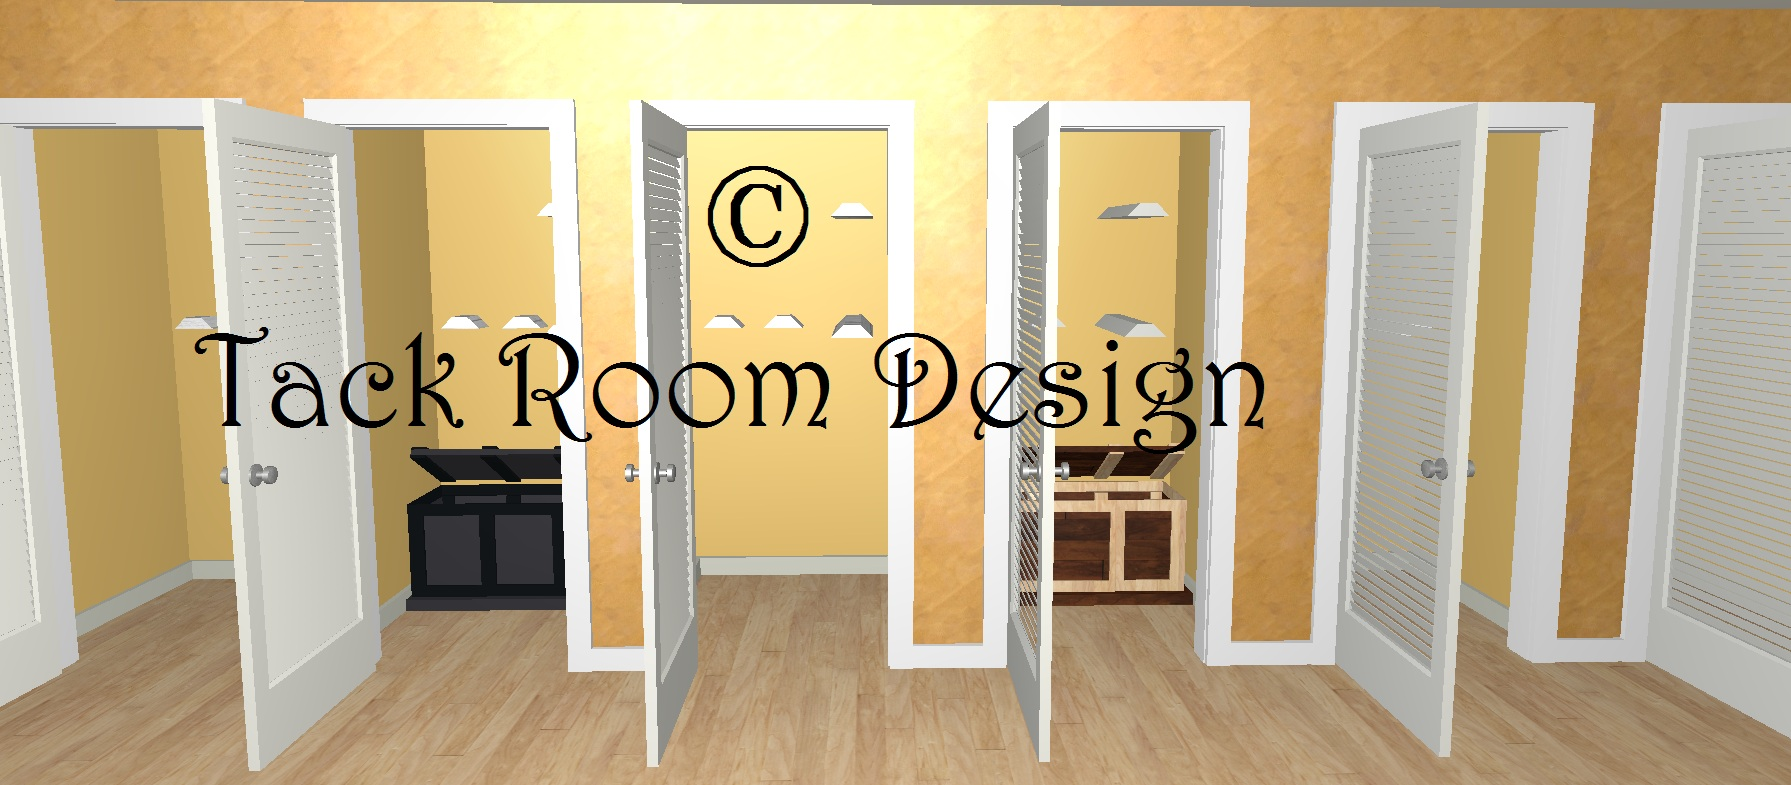 Tack Lockers Moxie Designs Tack Room Design